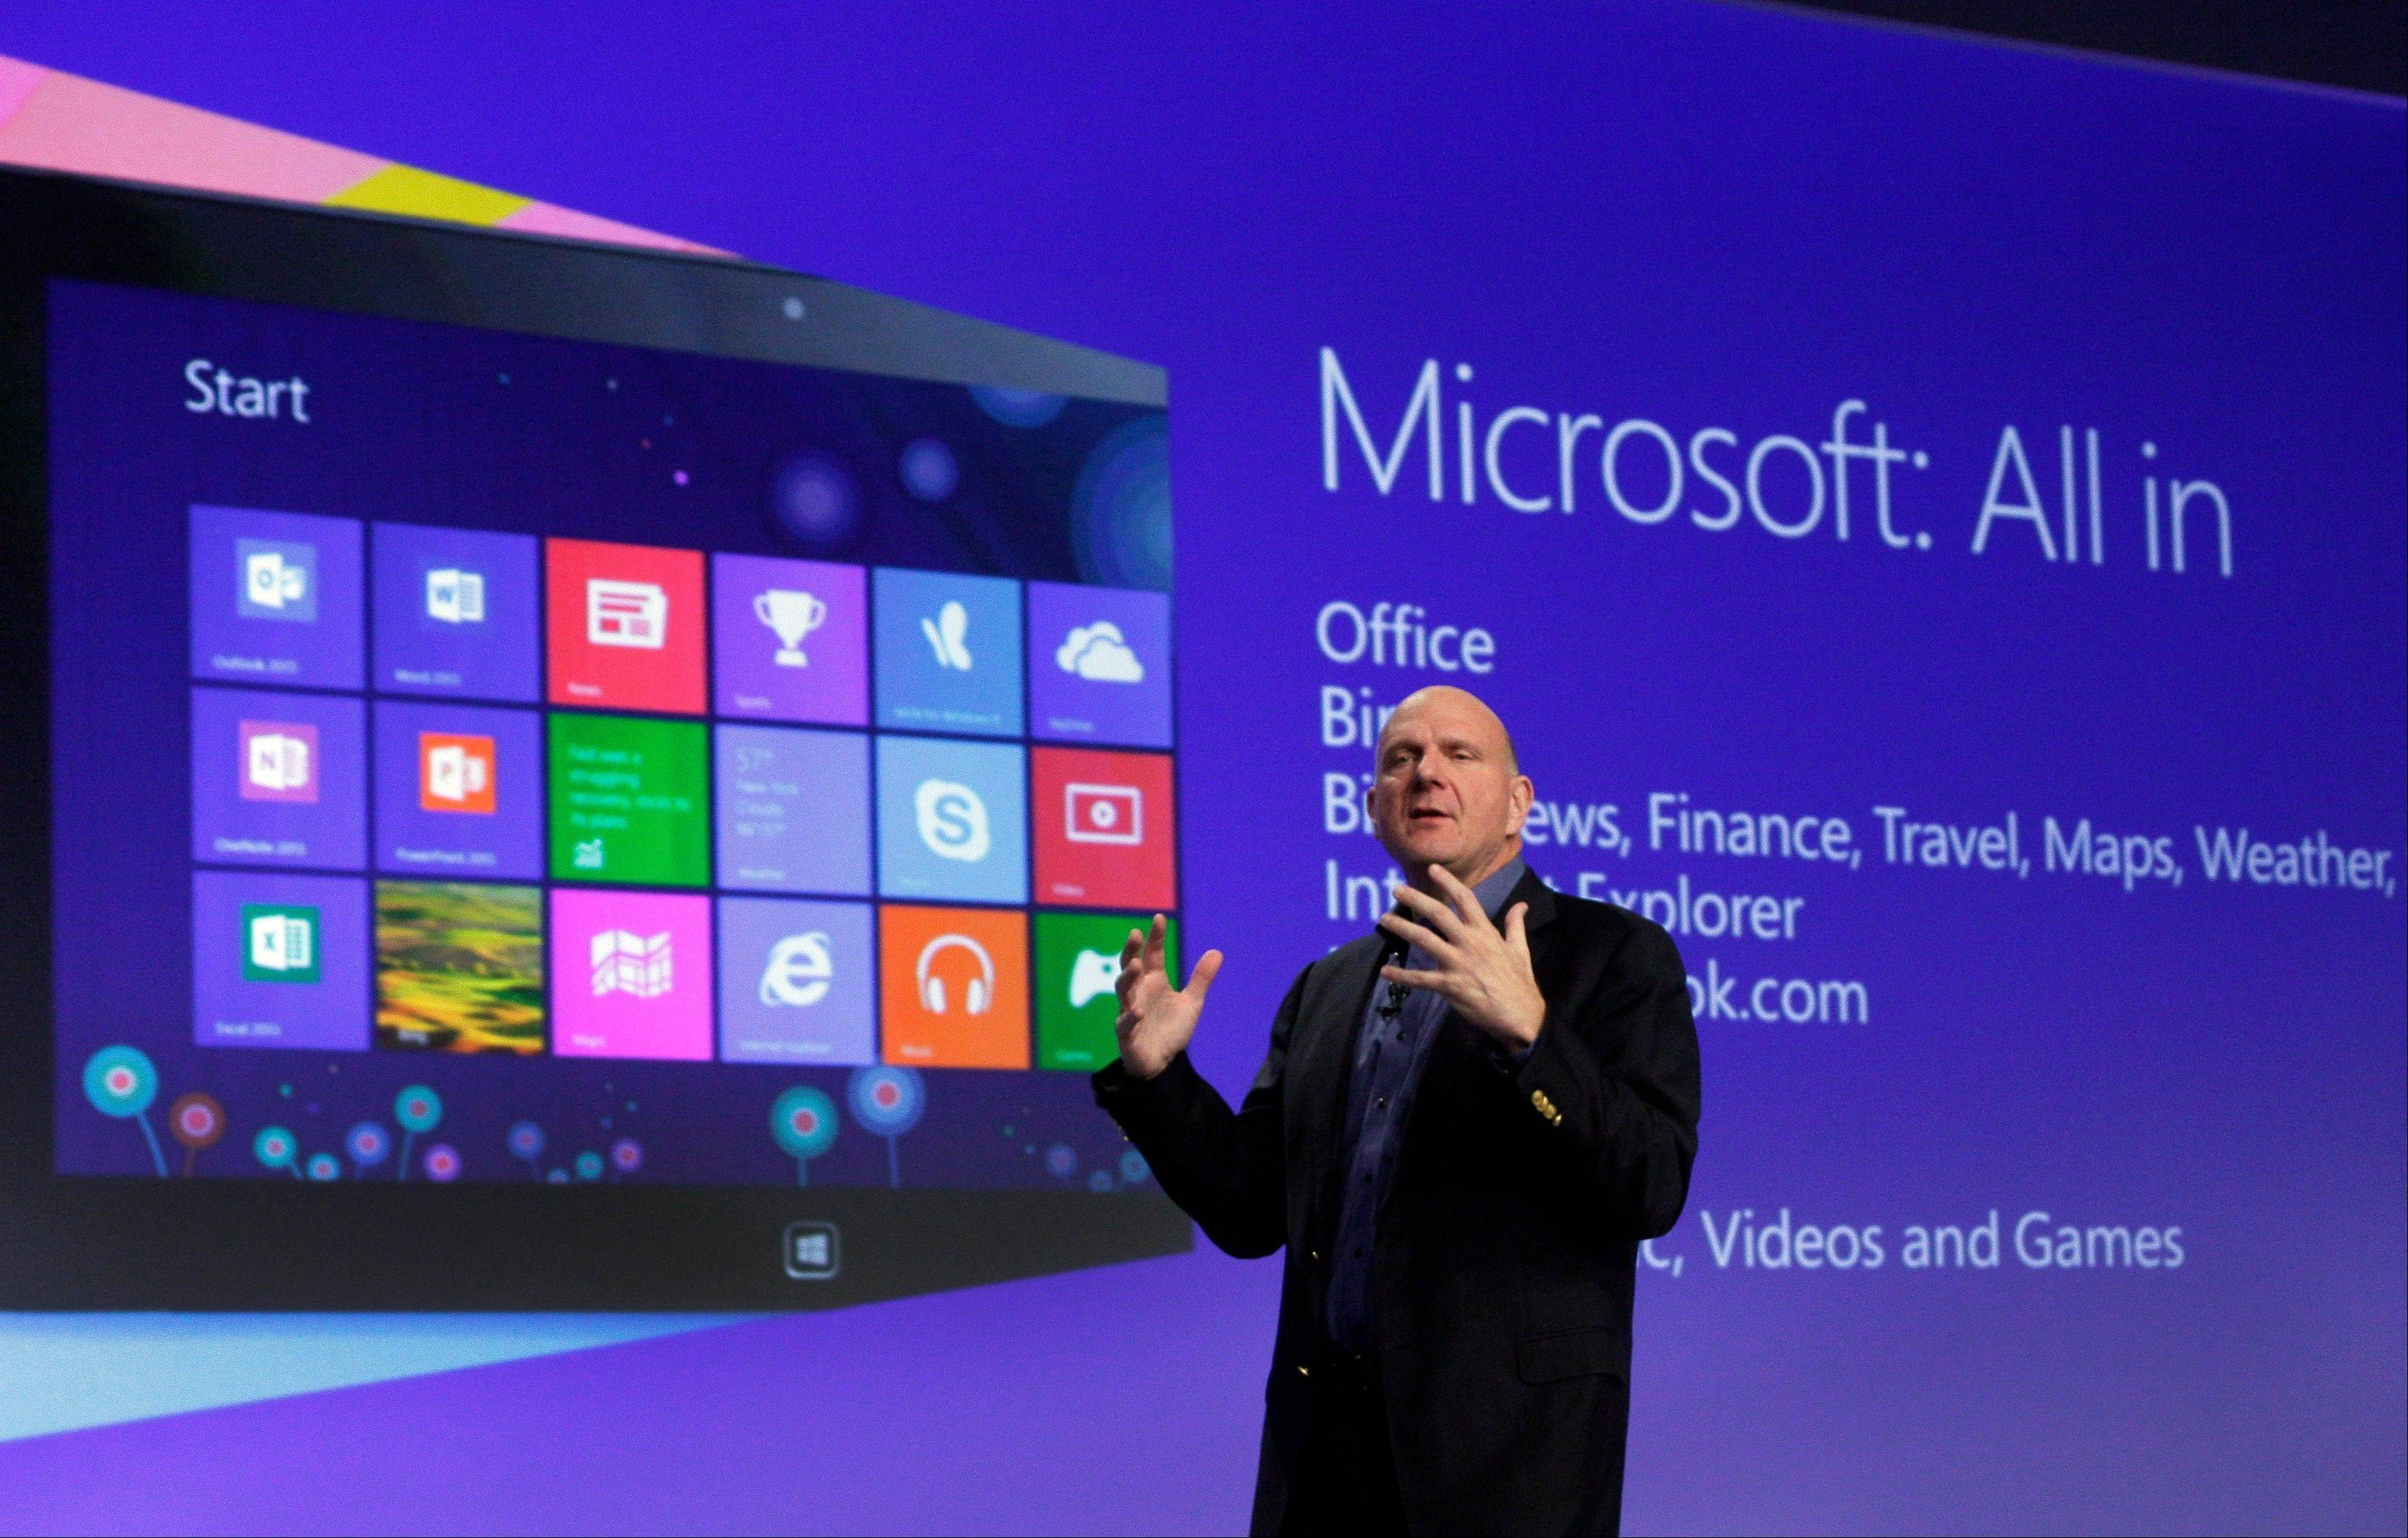 Microsoft CEO Steve Ballmer gives his presentation at the launch of Microsoft Windows 8 in New York in this Oct. 25, 2012, file photo. Microsoft is retooling the latest version of its Windows operating system to address complaints.